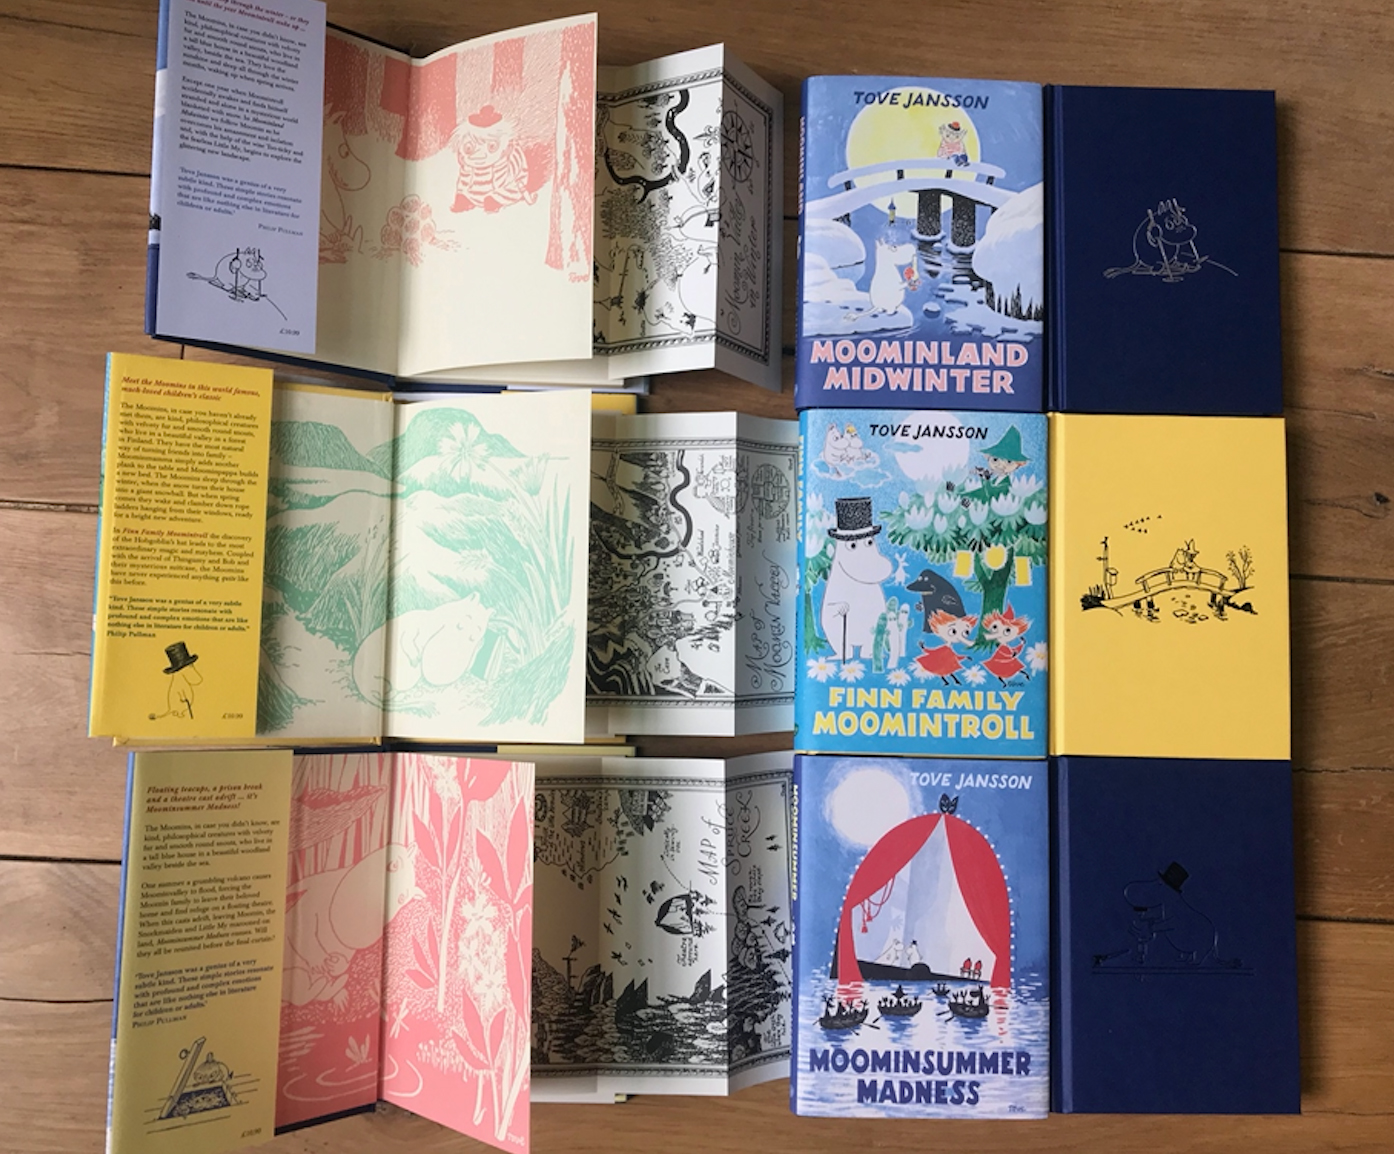 Tove-Jansson-Moomin-Books-Collection-2.jpg